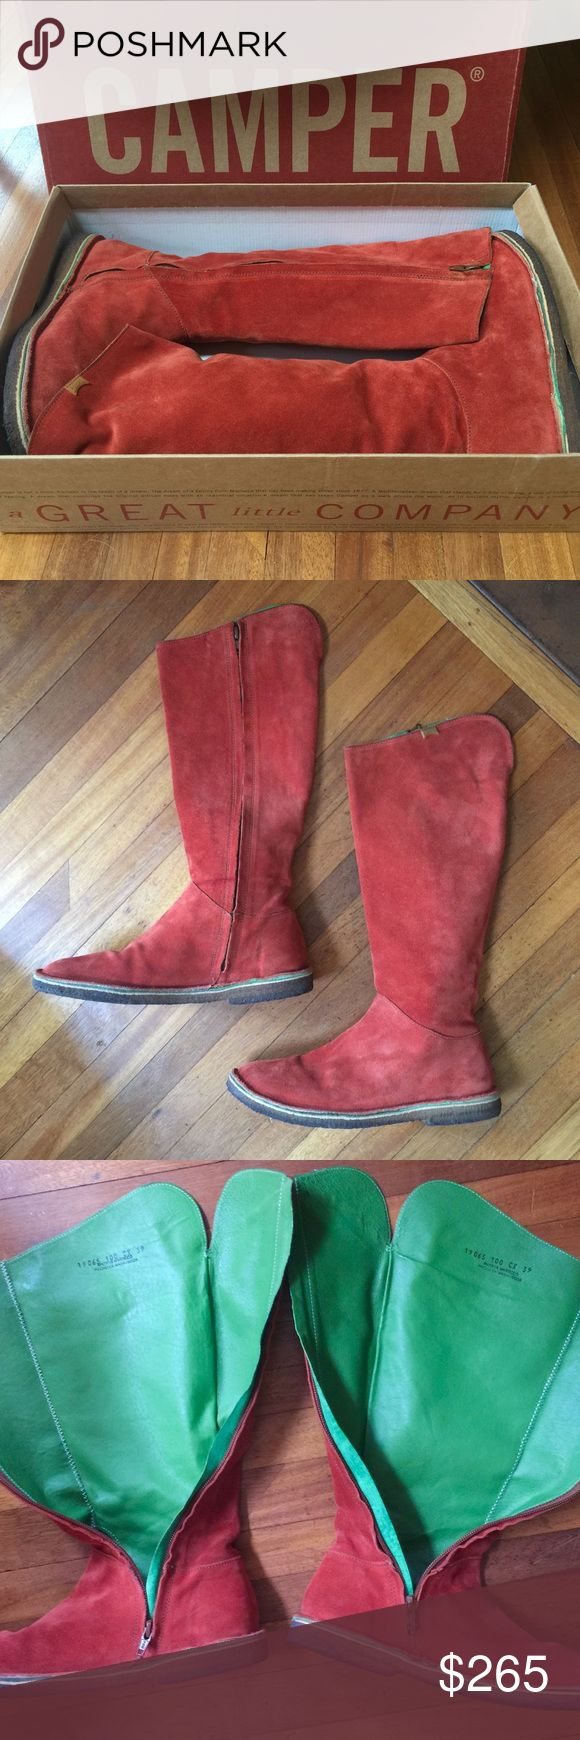 "Suede CAMPER Boots Rare, unique, exclusive! Gorgeous red suede Camper boots in excellent condition. Full length side zipper. Green leather contrast lining. Top edge of boots can be folded over if you want to show the contrast color as there is a slit at the top center back (shown in photos). Beautiful stitching throughout. Crepe soles are great for no-slip grip. Measurements: 13"" calf circumference, 15"" shaft height, 1"" heel. Size 39 (US 8-8.5). Please message with any questions. Thanks…"